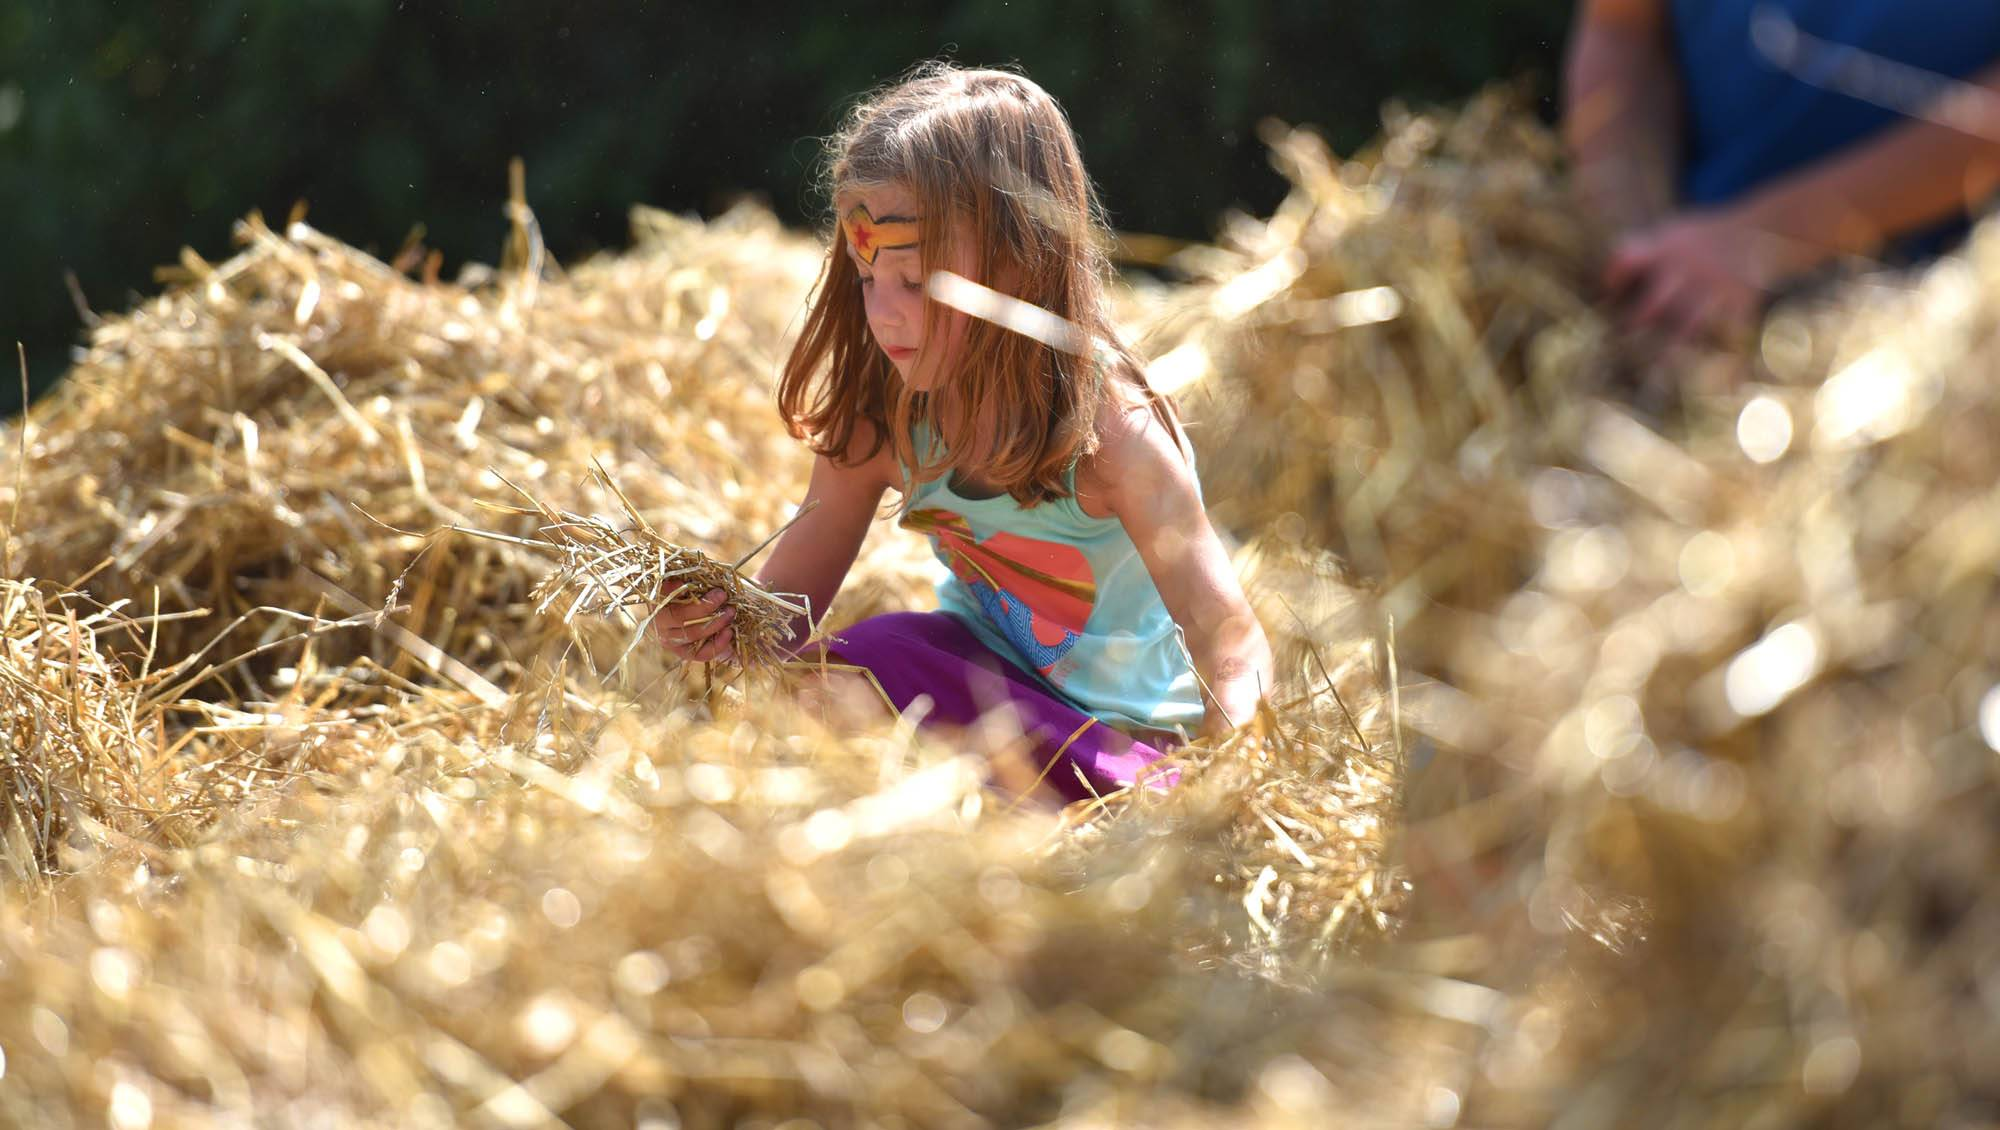 Lola Todd, 5, of West Dundee digs through a yard full of straw in search of coins Saturday at the Heritage Fest in West Dundee.